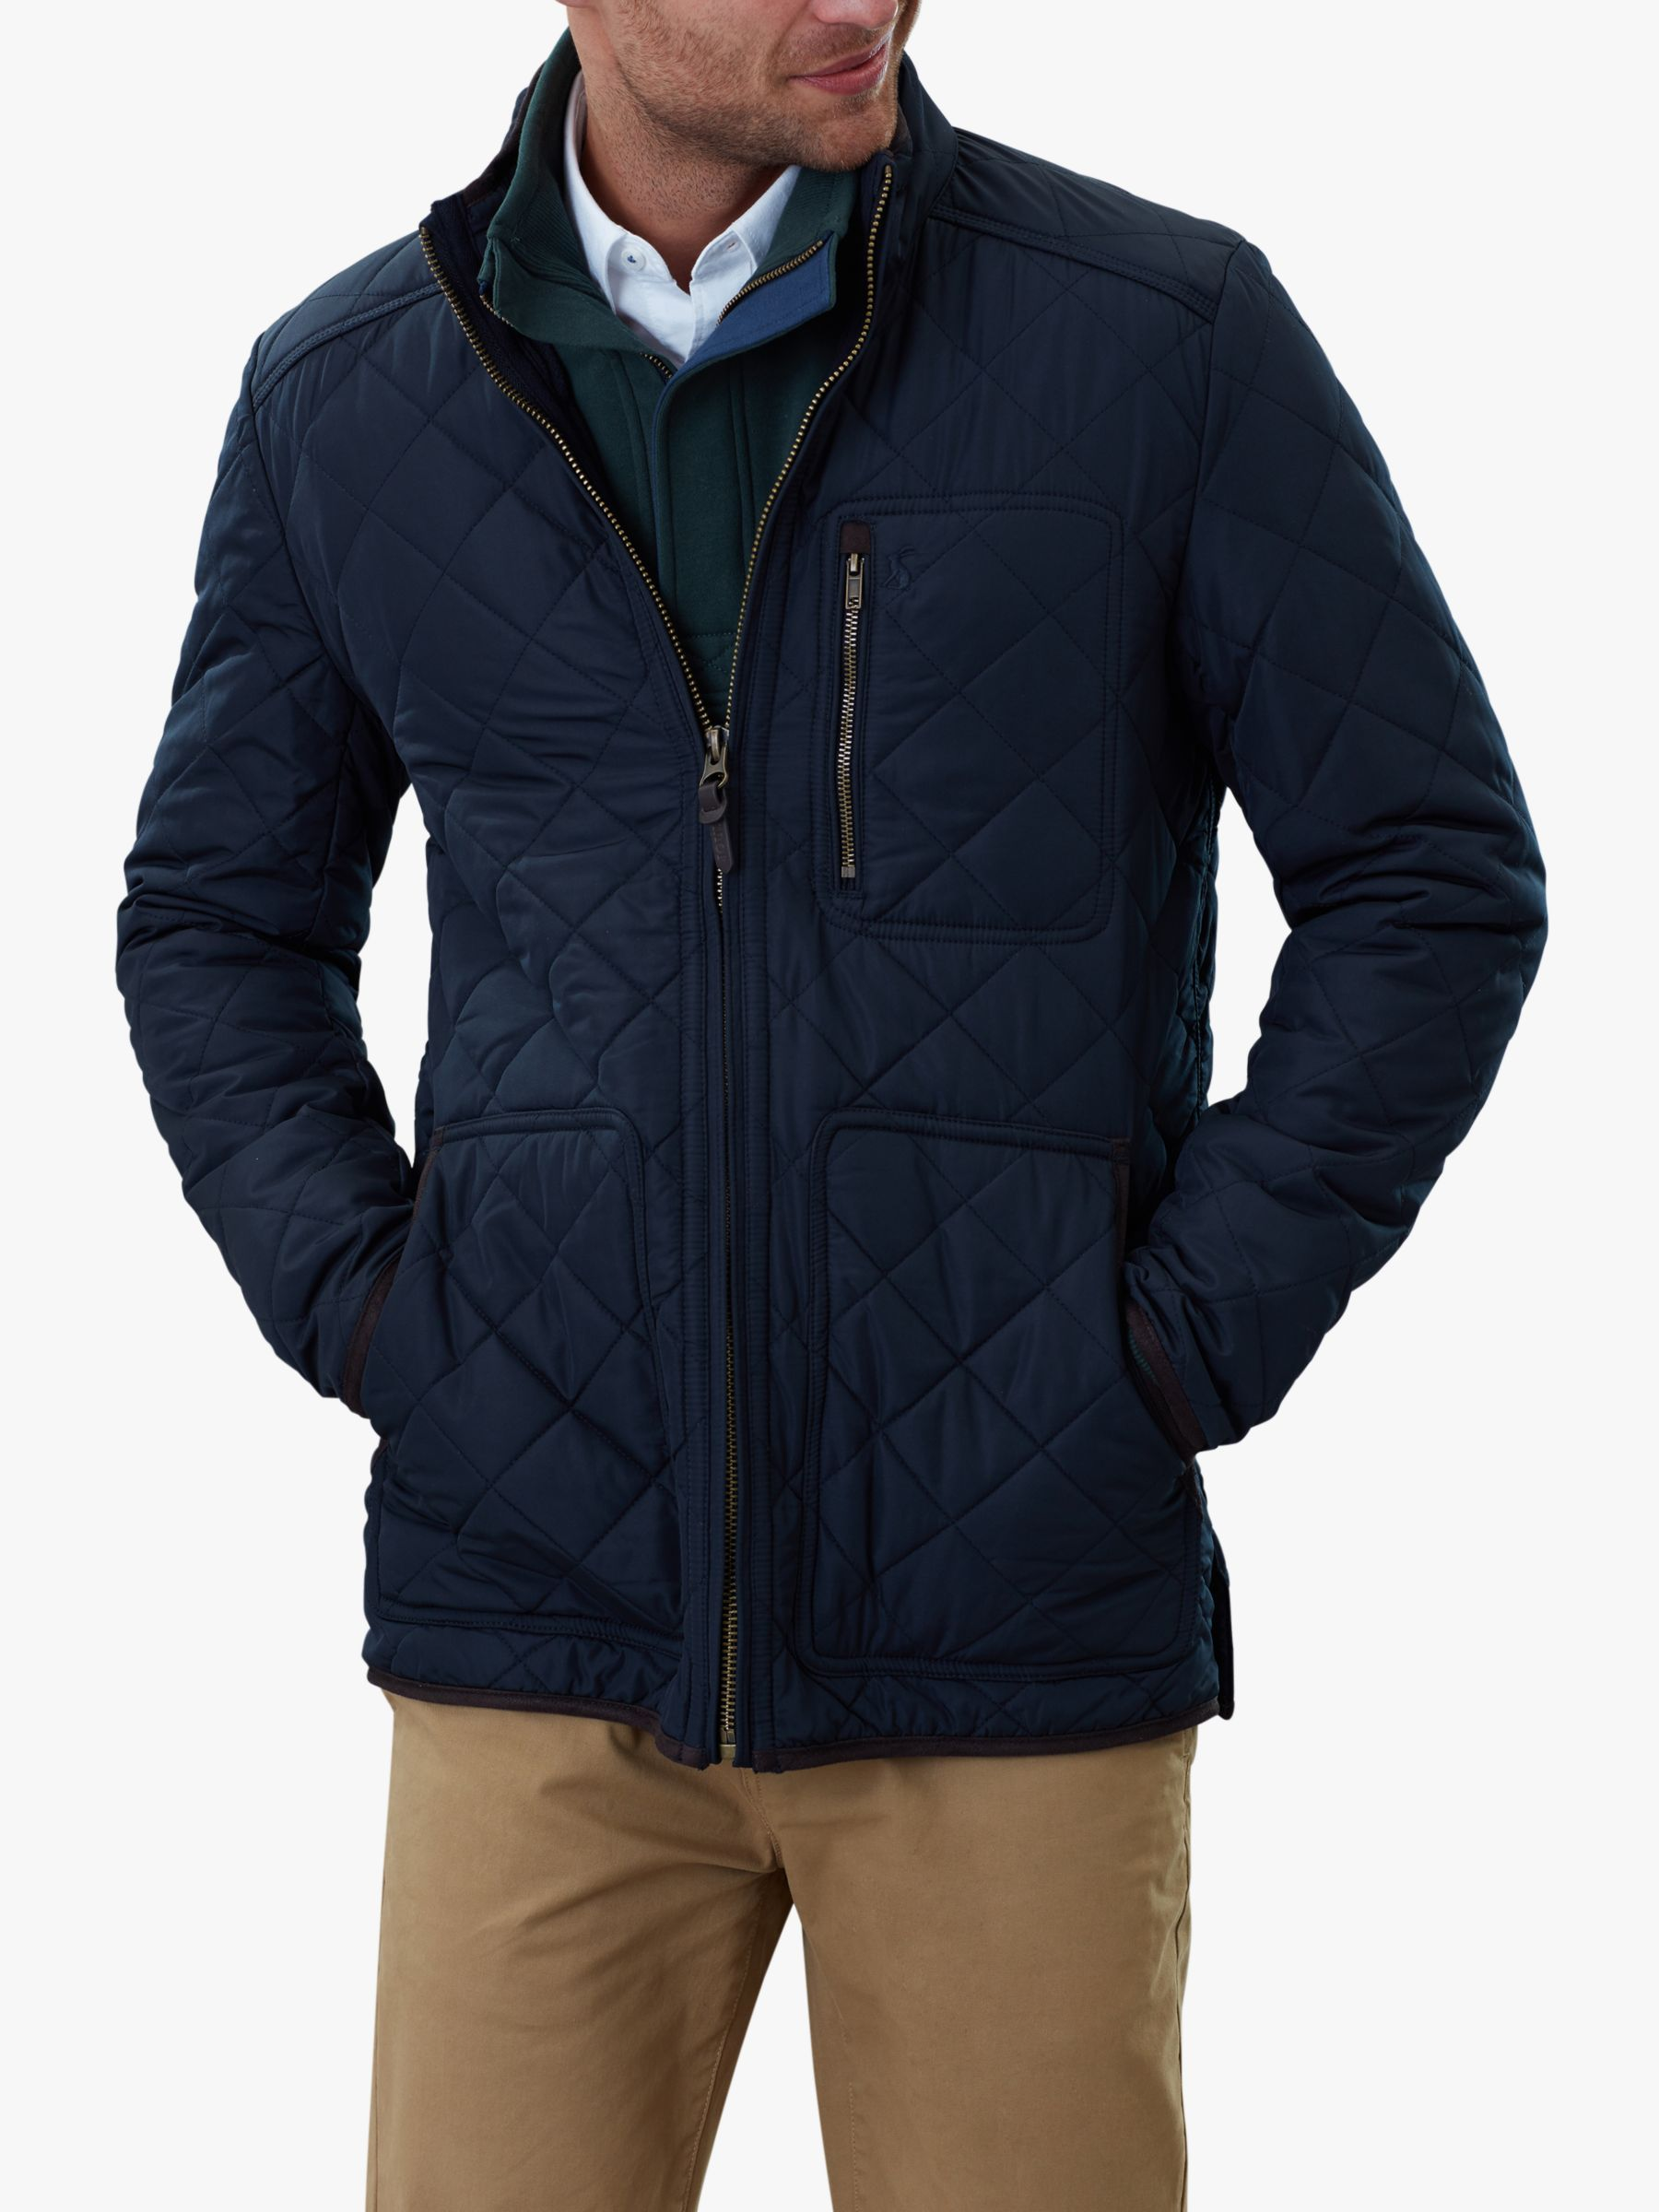 Joules Joules Derwent Quilted Jacket, Marine Navy